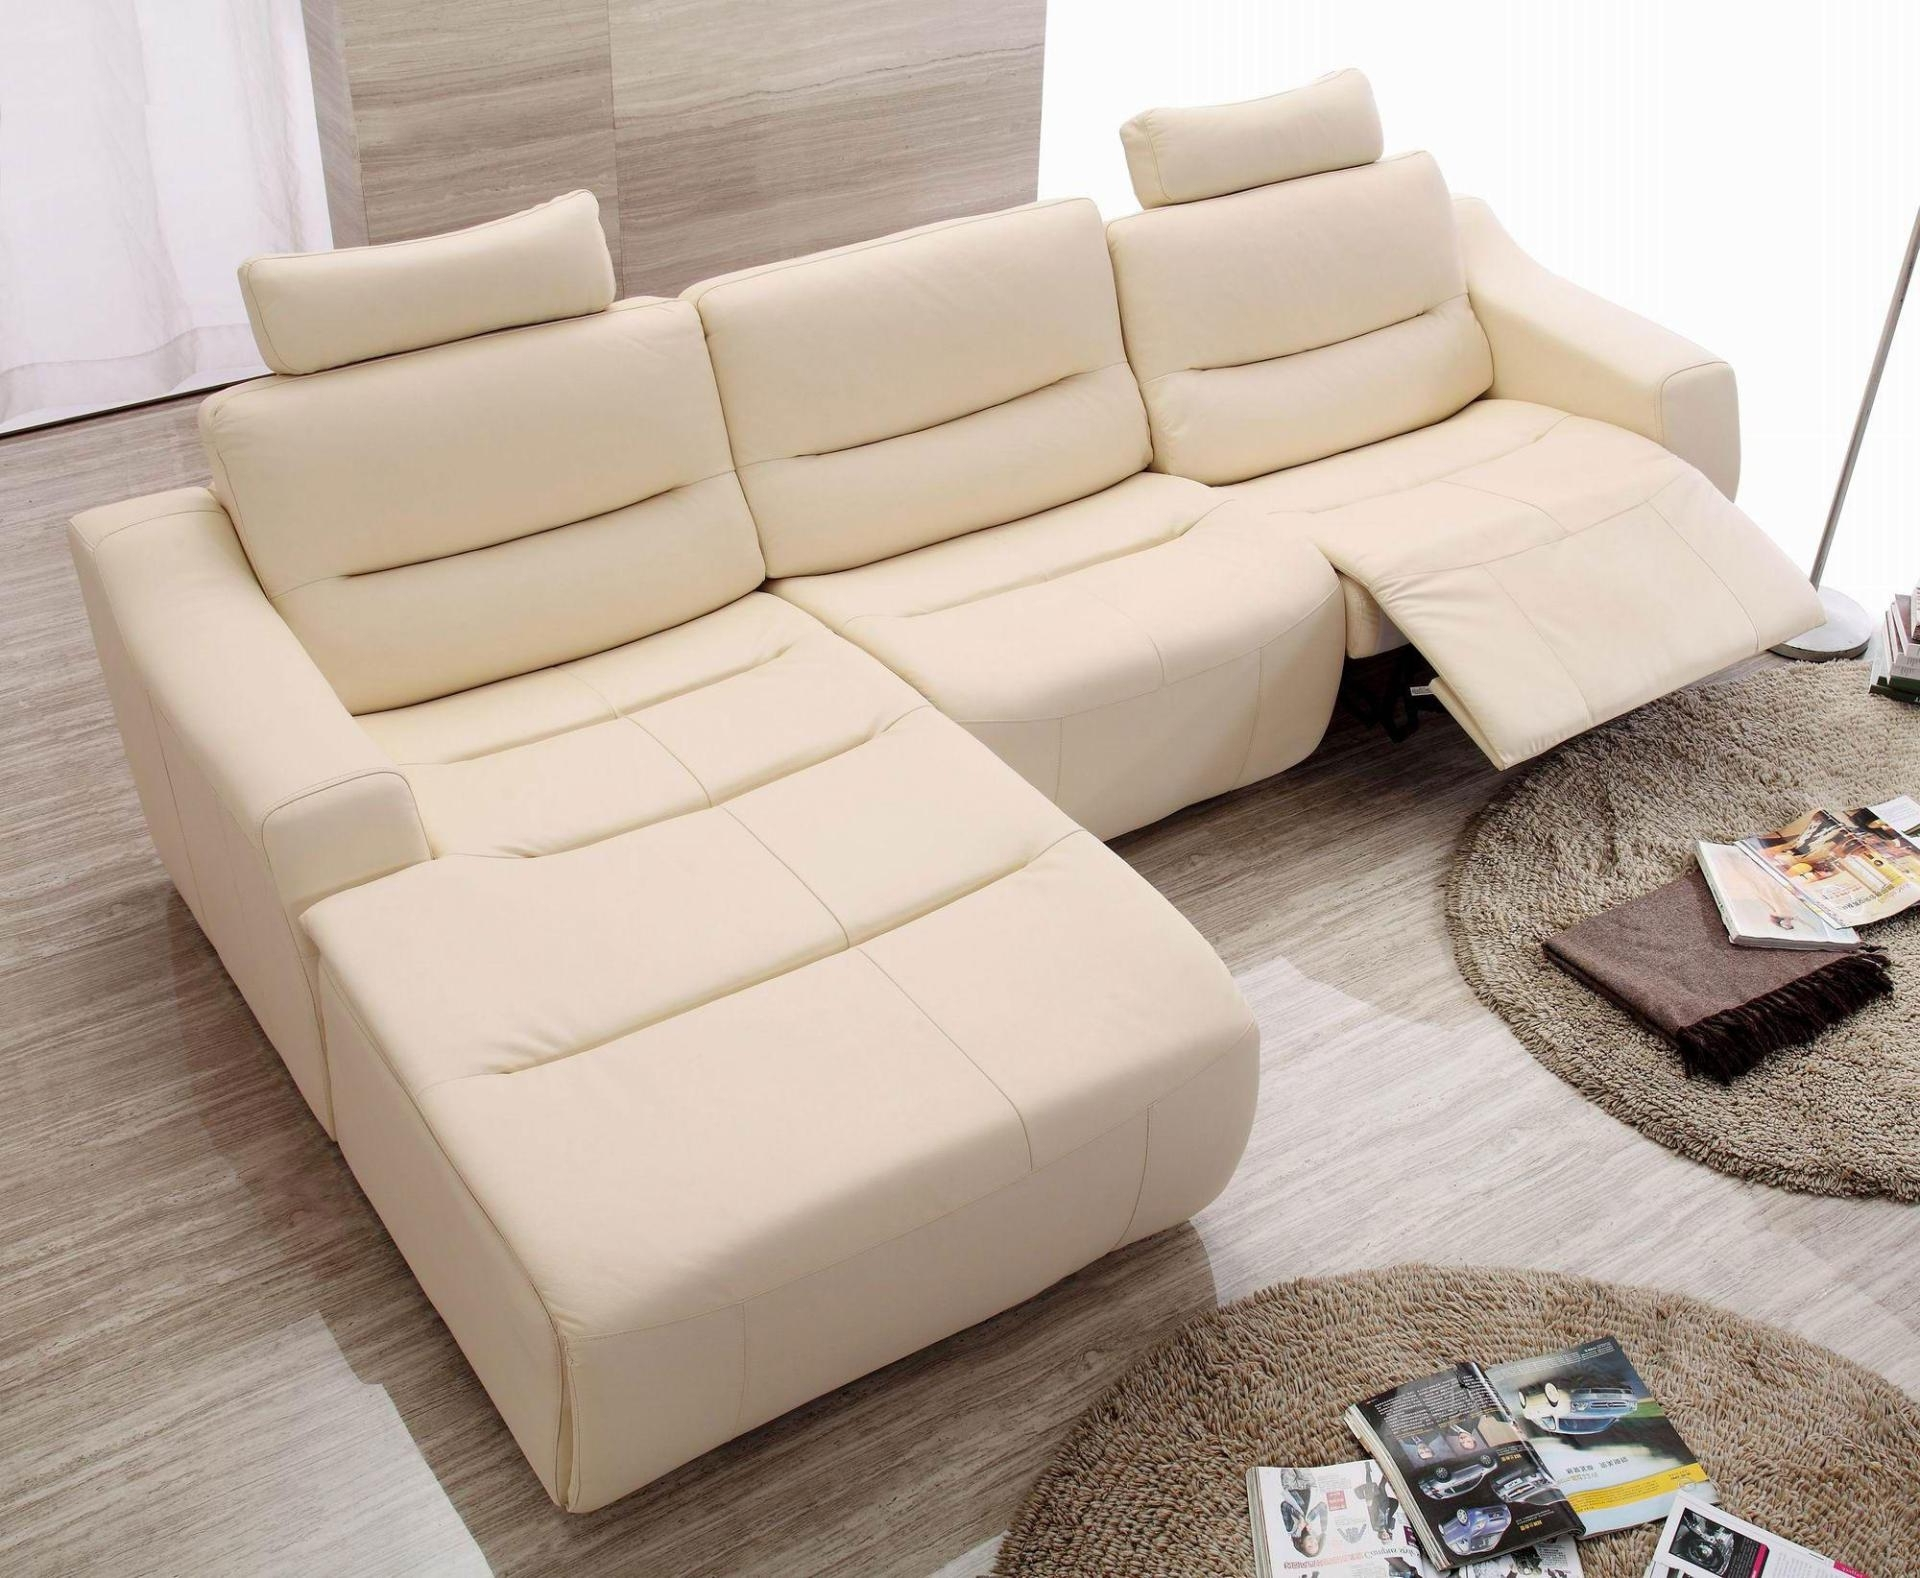 Most Popular Rochester Ny Sectional Sofas Pertaining To Awesome Recliner Sectional Sofas Small Space 35 For Your Sectional (View 14 of 20)